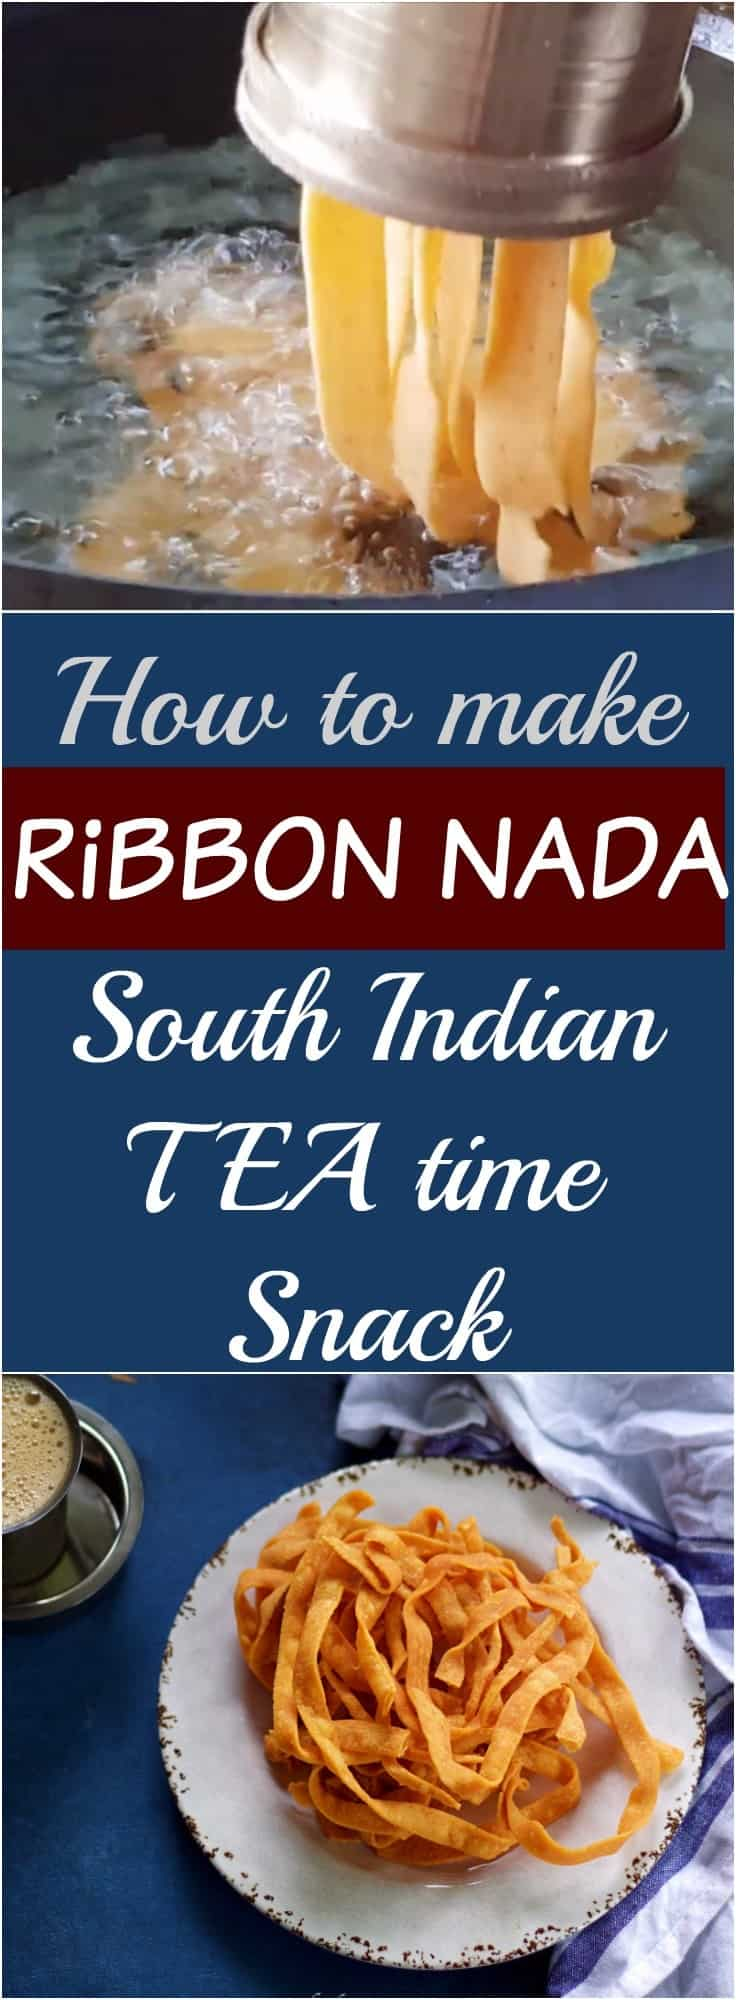 Ribbon Nada - South indian tea time snack traditional and authentic snack